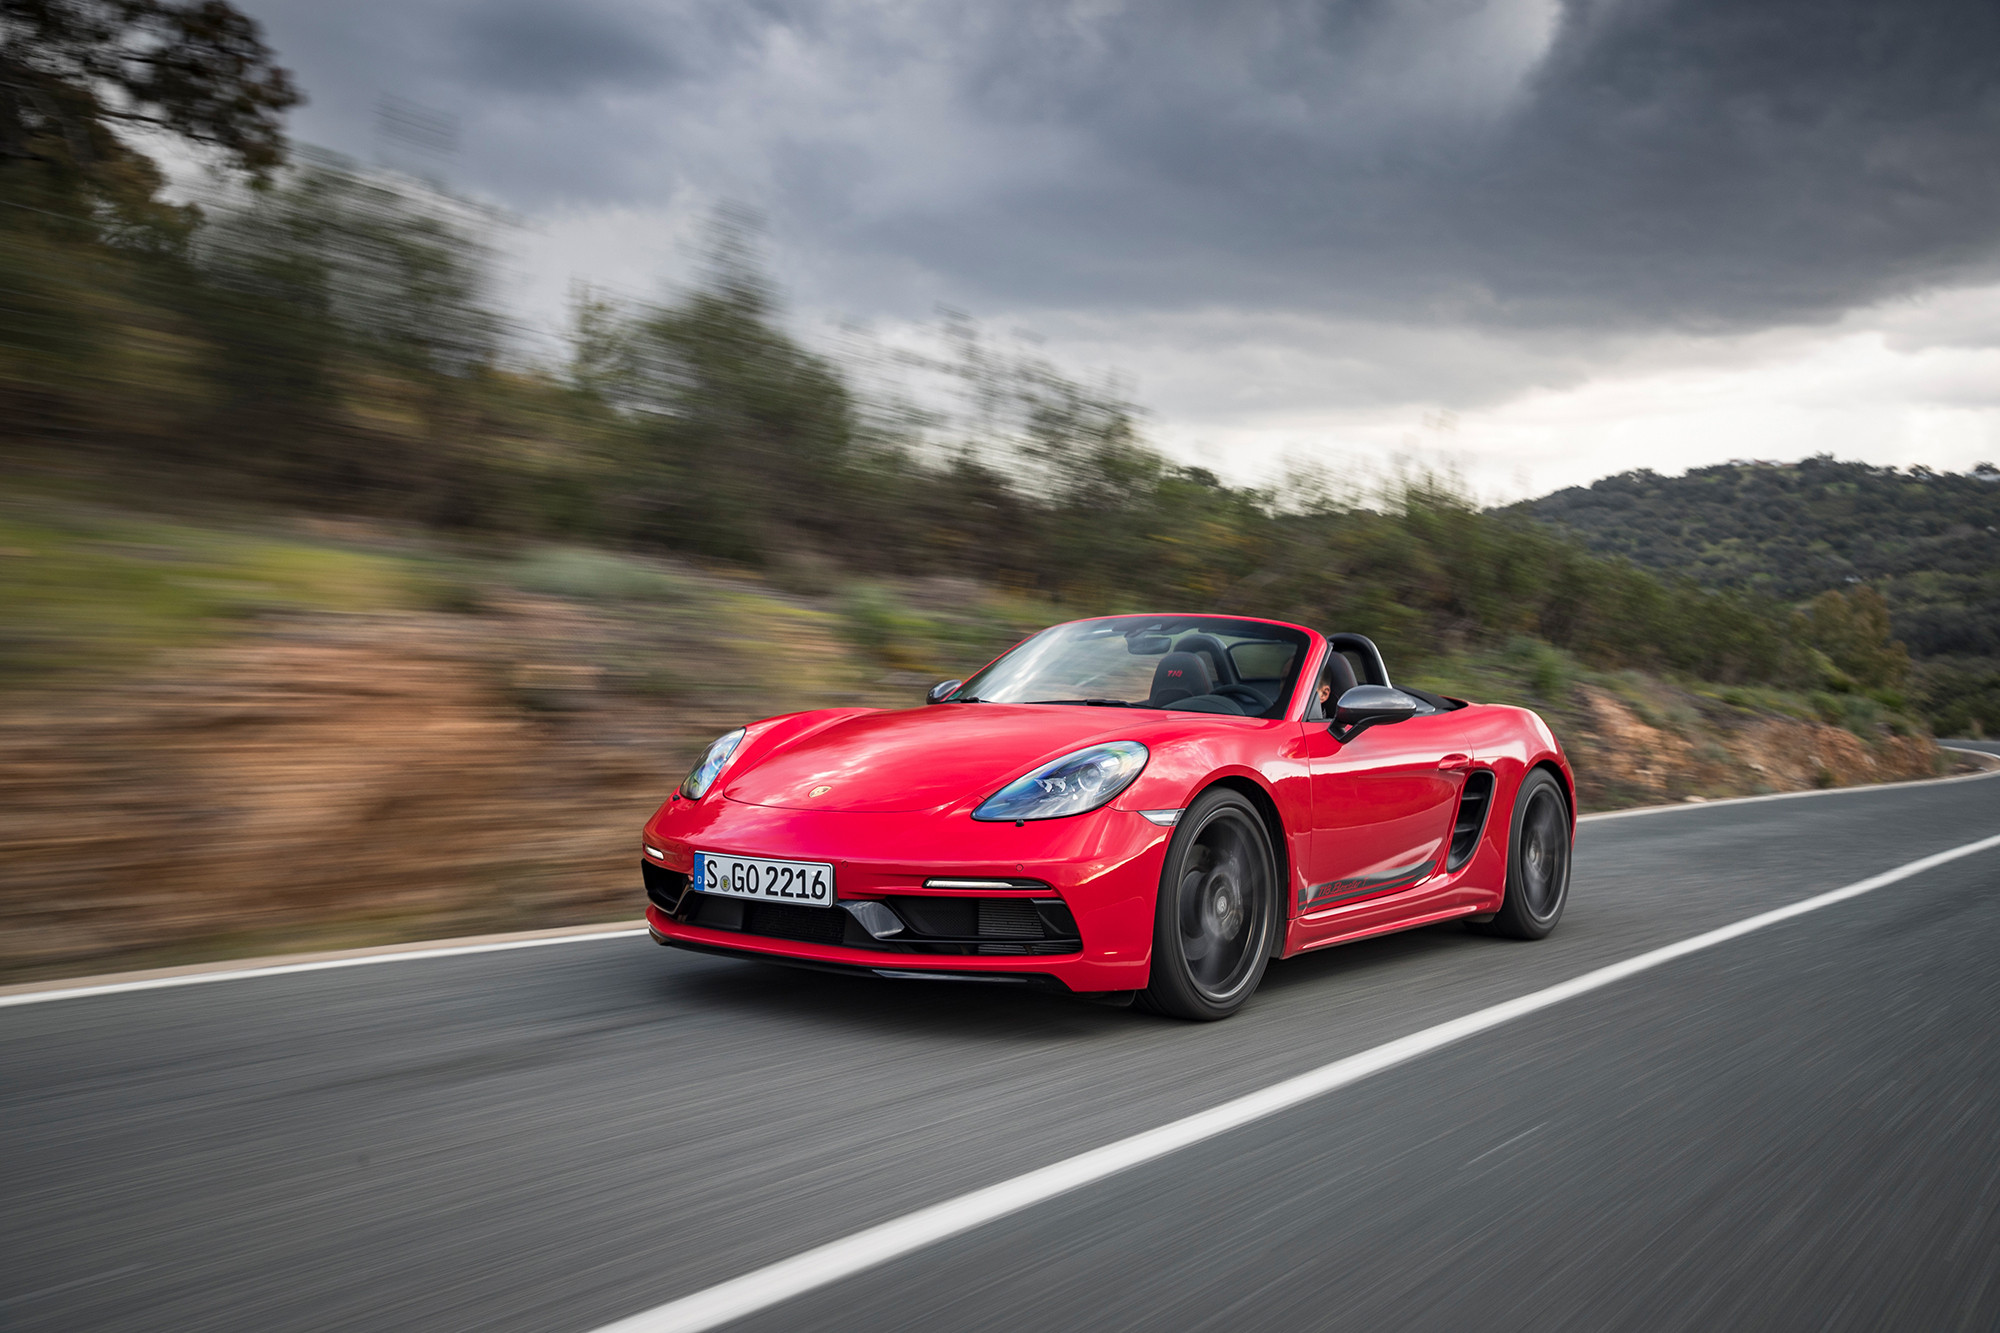 2020 Porsche 718 Boxster T, 718 Cayman T Peddle Performance as Standard